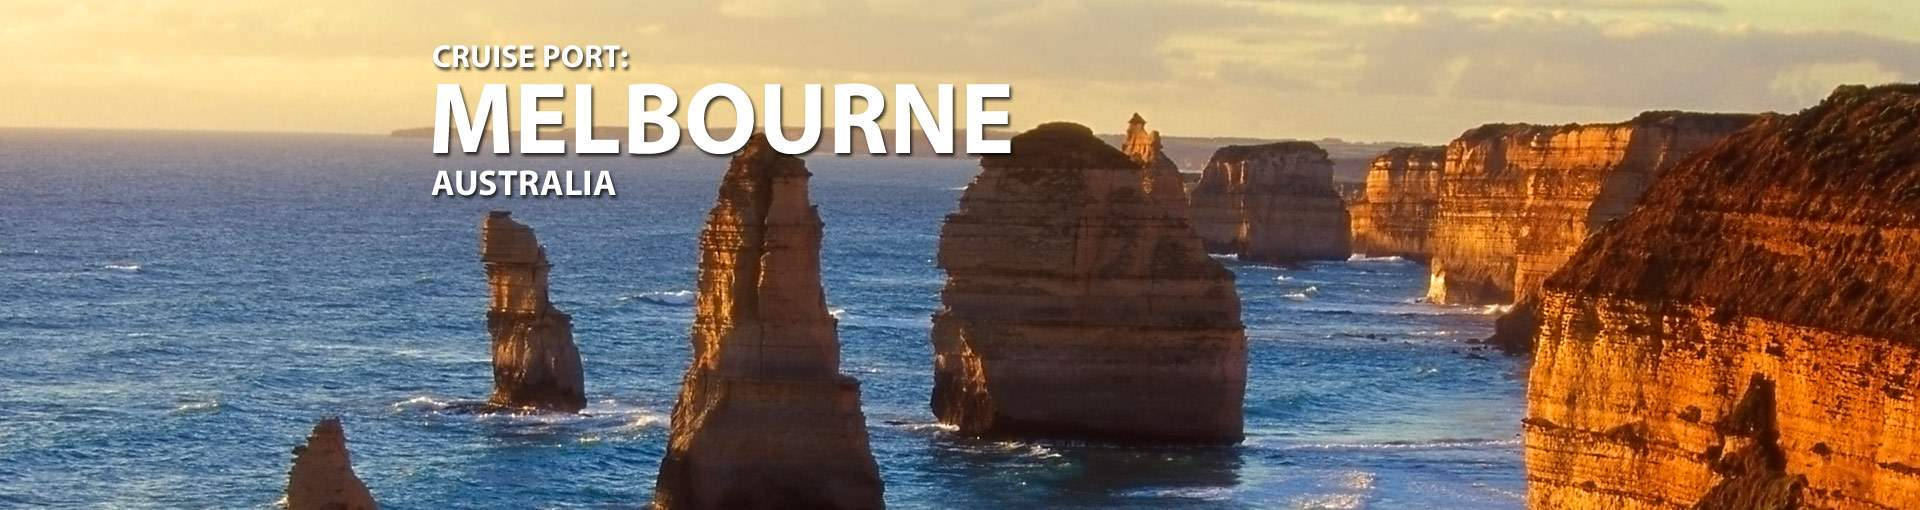 Cruises from Melbourne, Australia